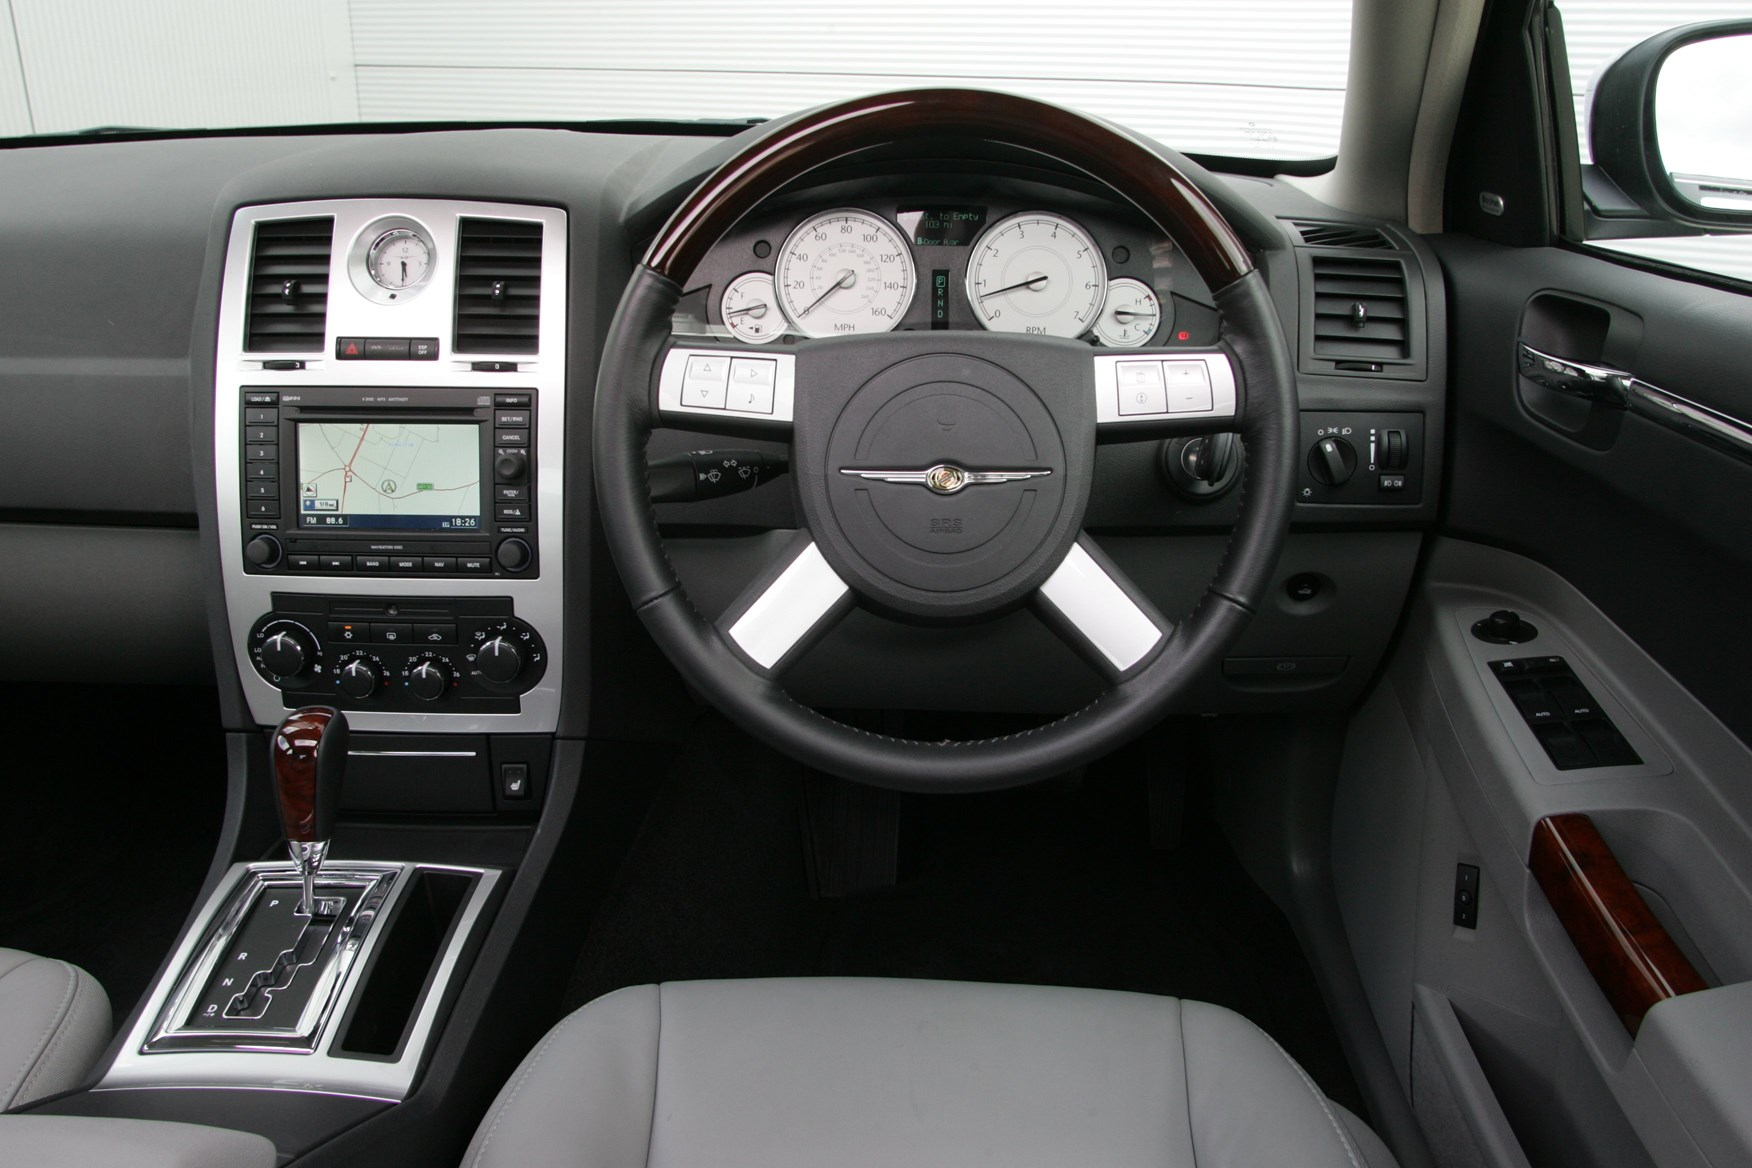 Chrysler 300c saloon review 2005 2010 parkers - Chrysler 300 interior accessories ...